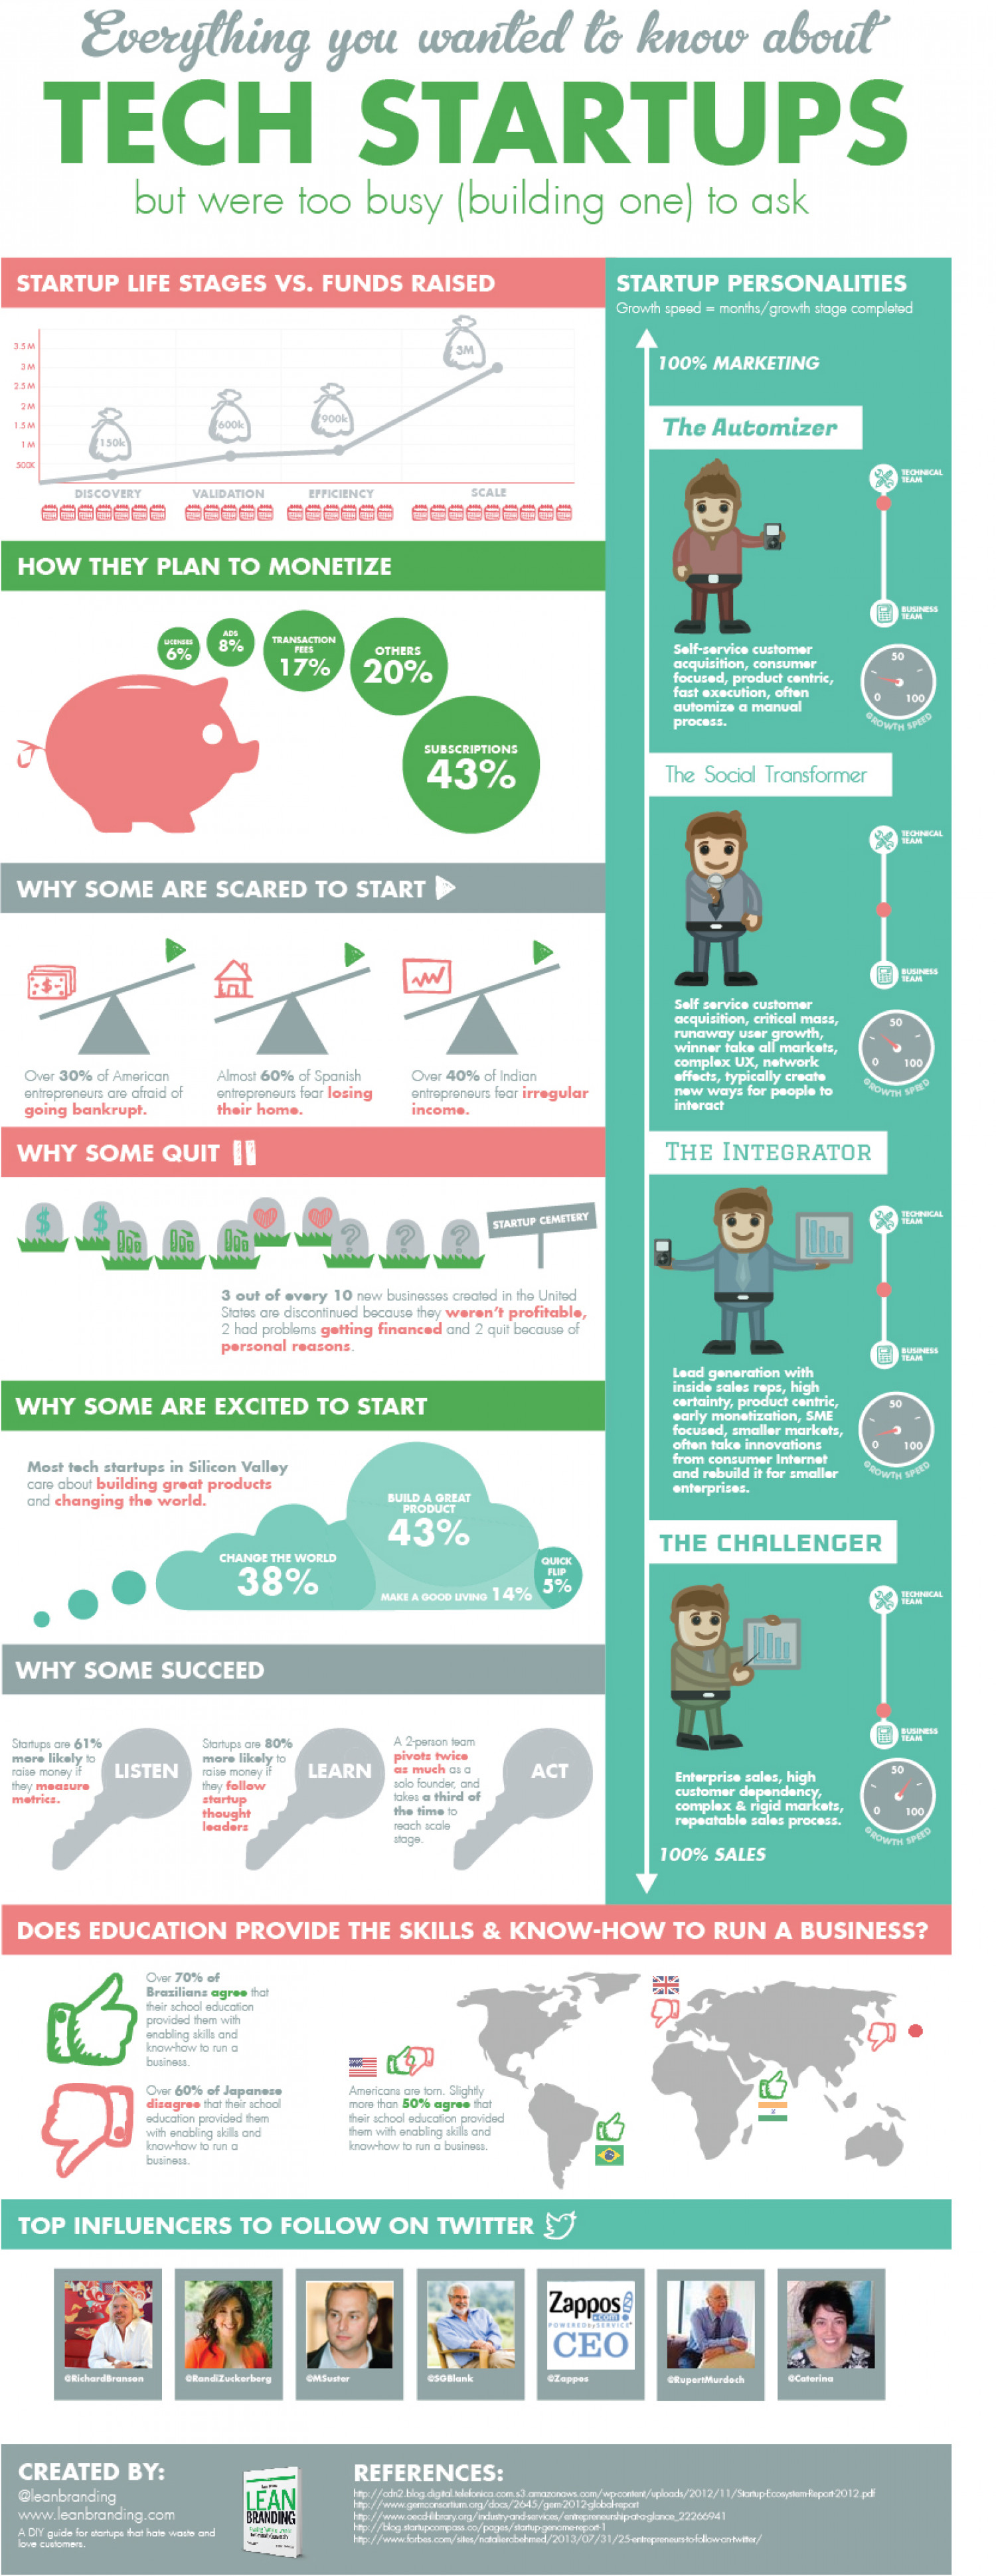 Tech Startups Infographic